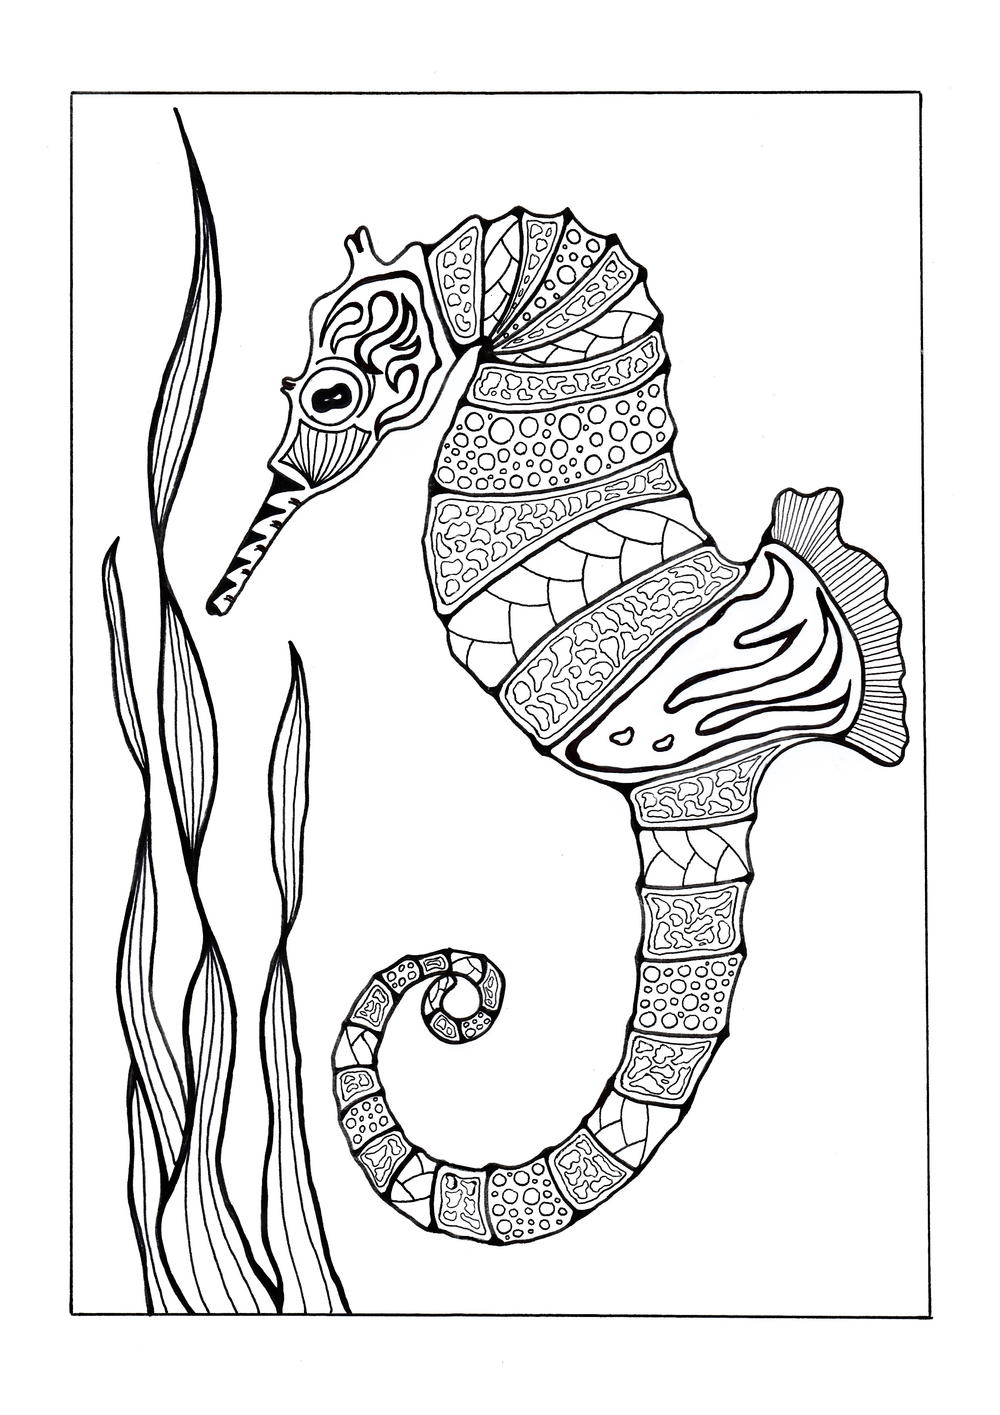 Colorful Seahorse Adult Coloring Page | FaveCrafts.com